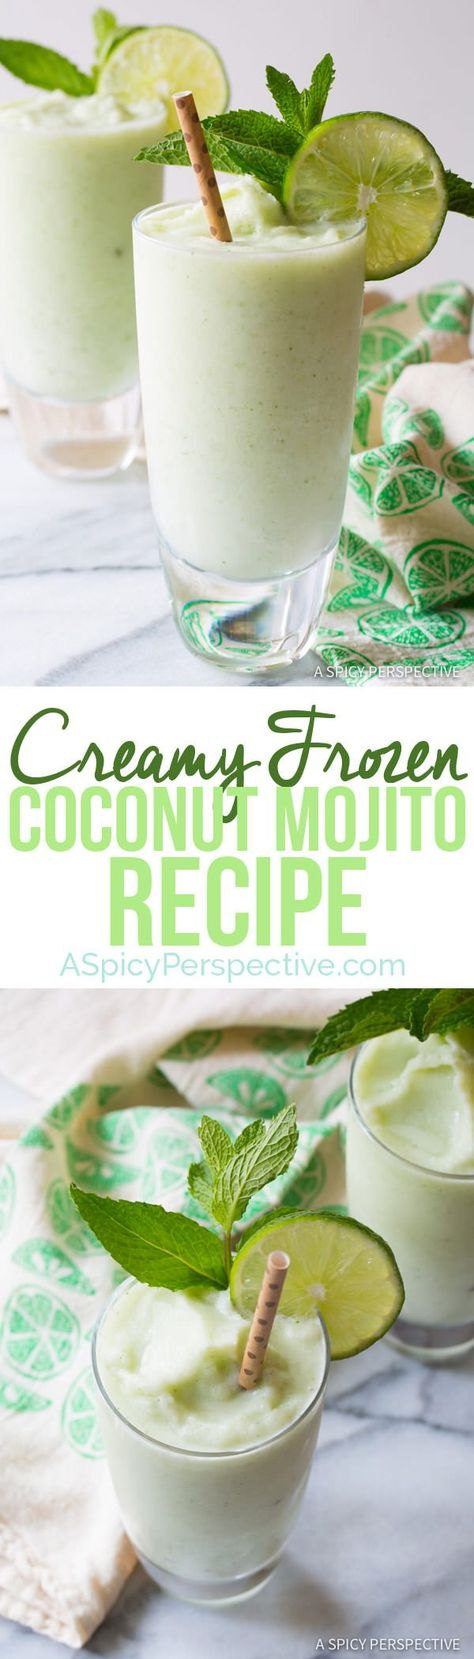 The Best Frozen Coconut Mojito Recipe - A creamy tropical cocktail that combines the appeal of a pina colada with refreshing mojito flavors of mint, lime and coconut rum. Craft Cocktails, Party Drinks, Cocktail Drinks, Fun Drinks, Beverages, Mixed Drinks, Coconut Mojito, Coconut Rum, Refreshing Drinks